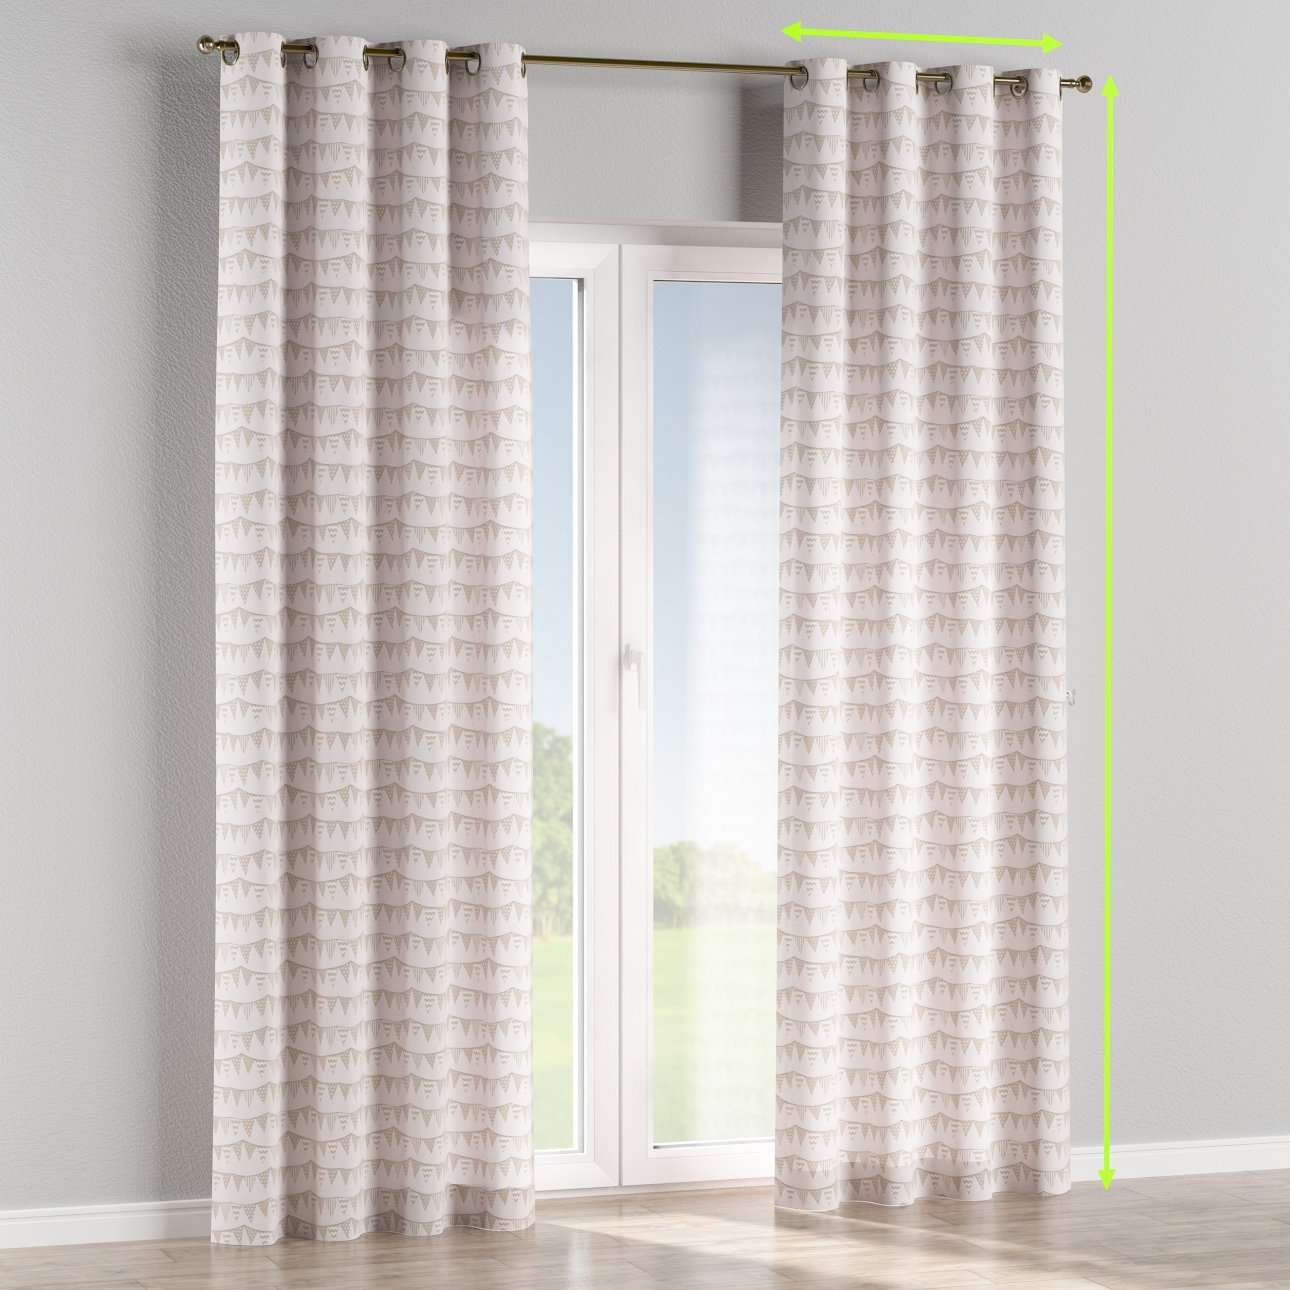 Eyelet curtains in collection Marina, fabric: 140-65